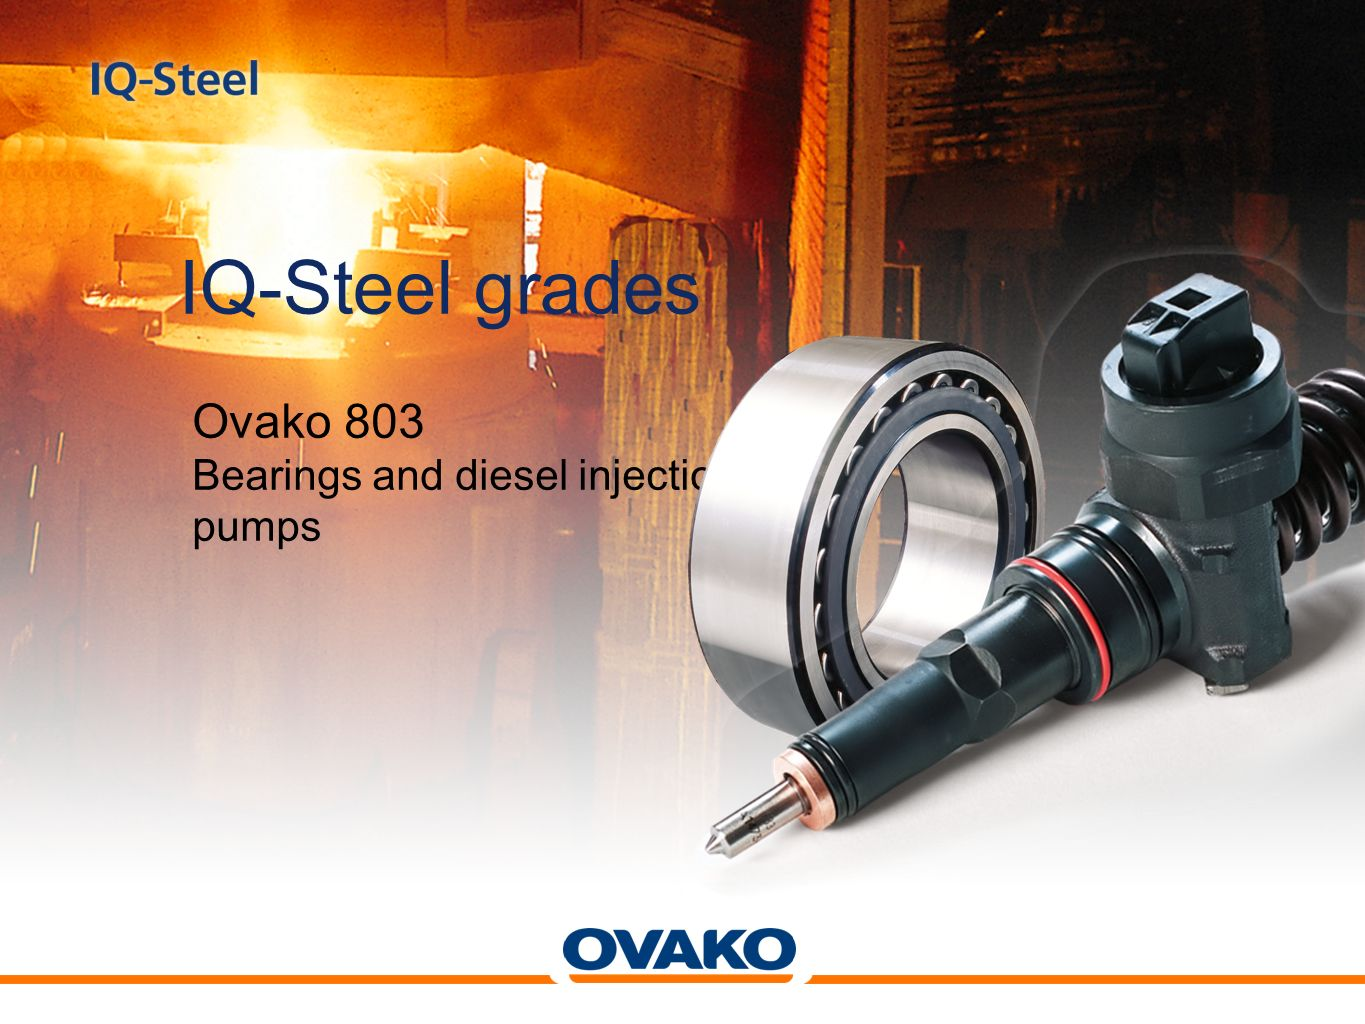 IQ-Steel grades Ovako 803 Bearings and diesel injection pumps